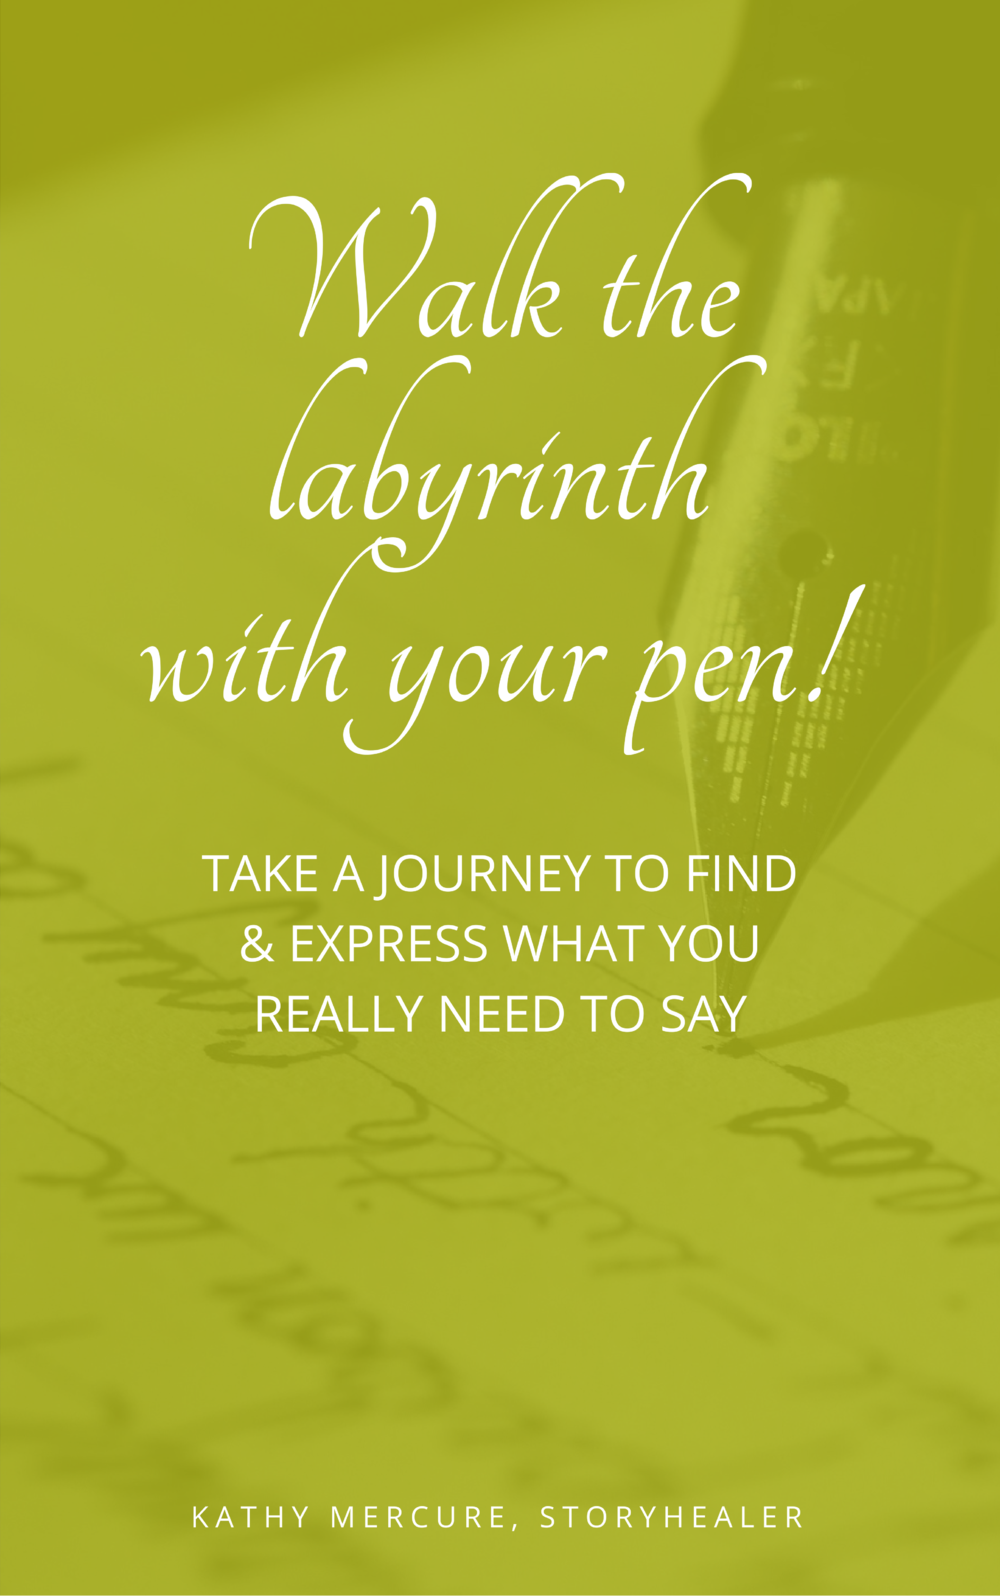 Walk the labyrinth with your pen